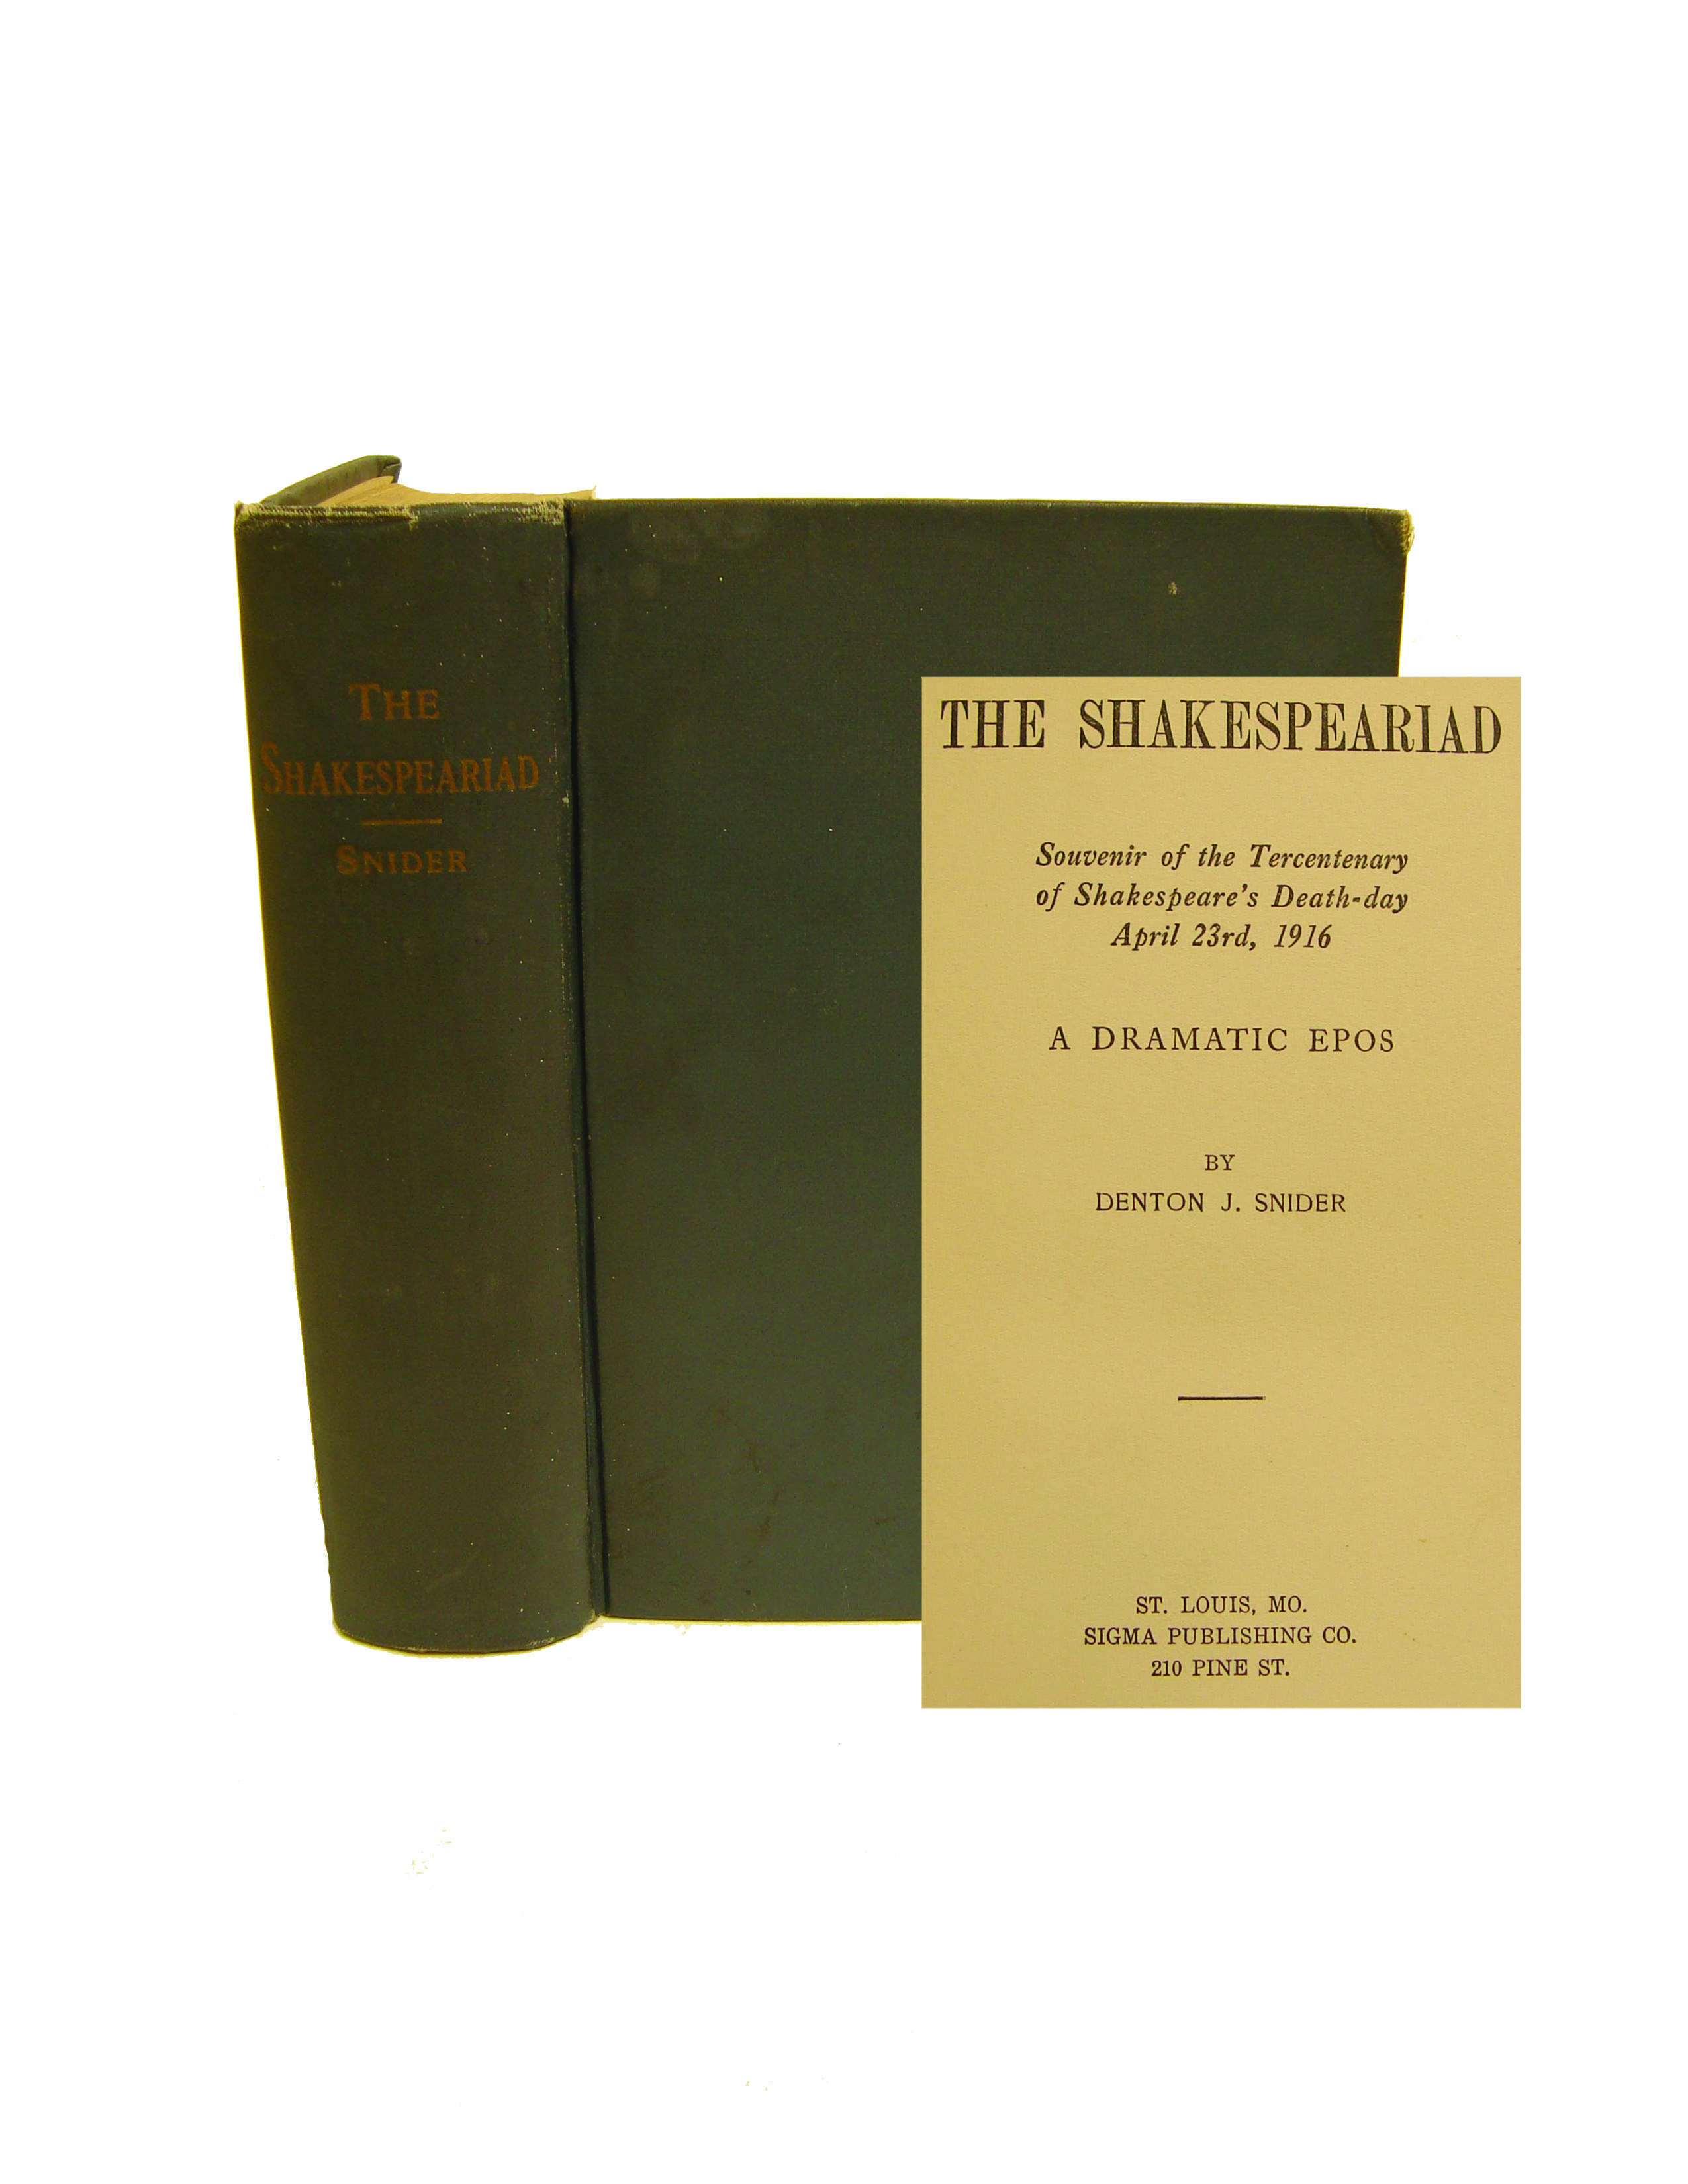 The Shakespeariad: Souvenir of the Tercentenary of Shakespeare's Death-Day, April 23rd, 1916 - A Dramatic Epos, Snider, Denton